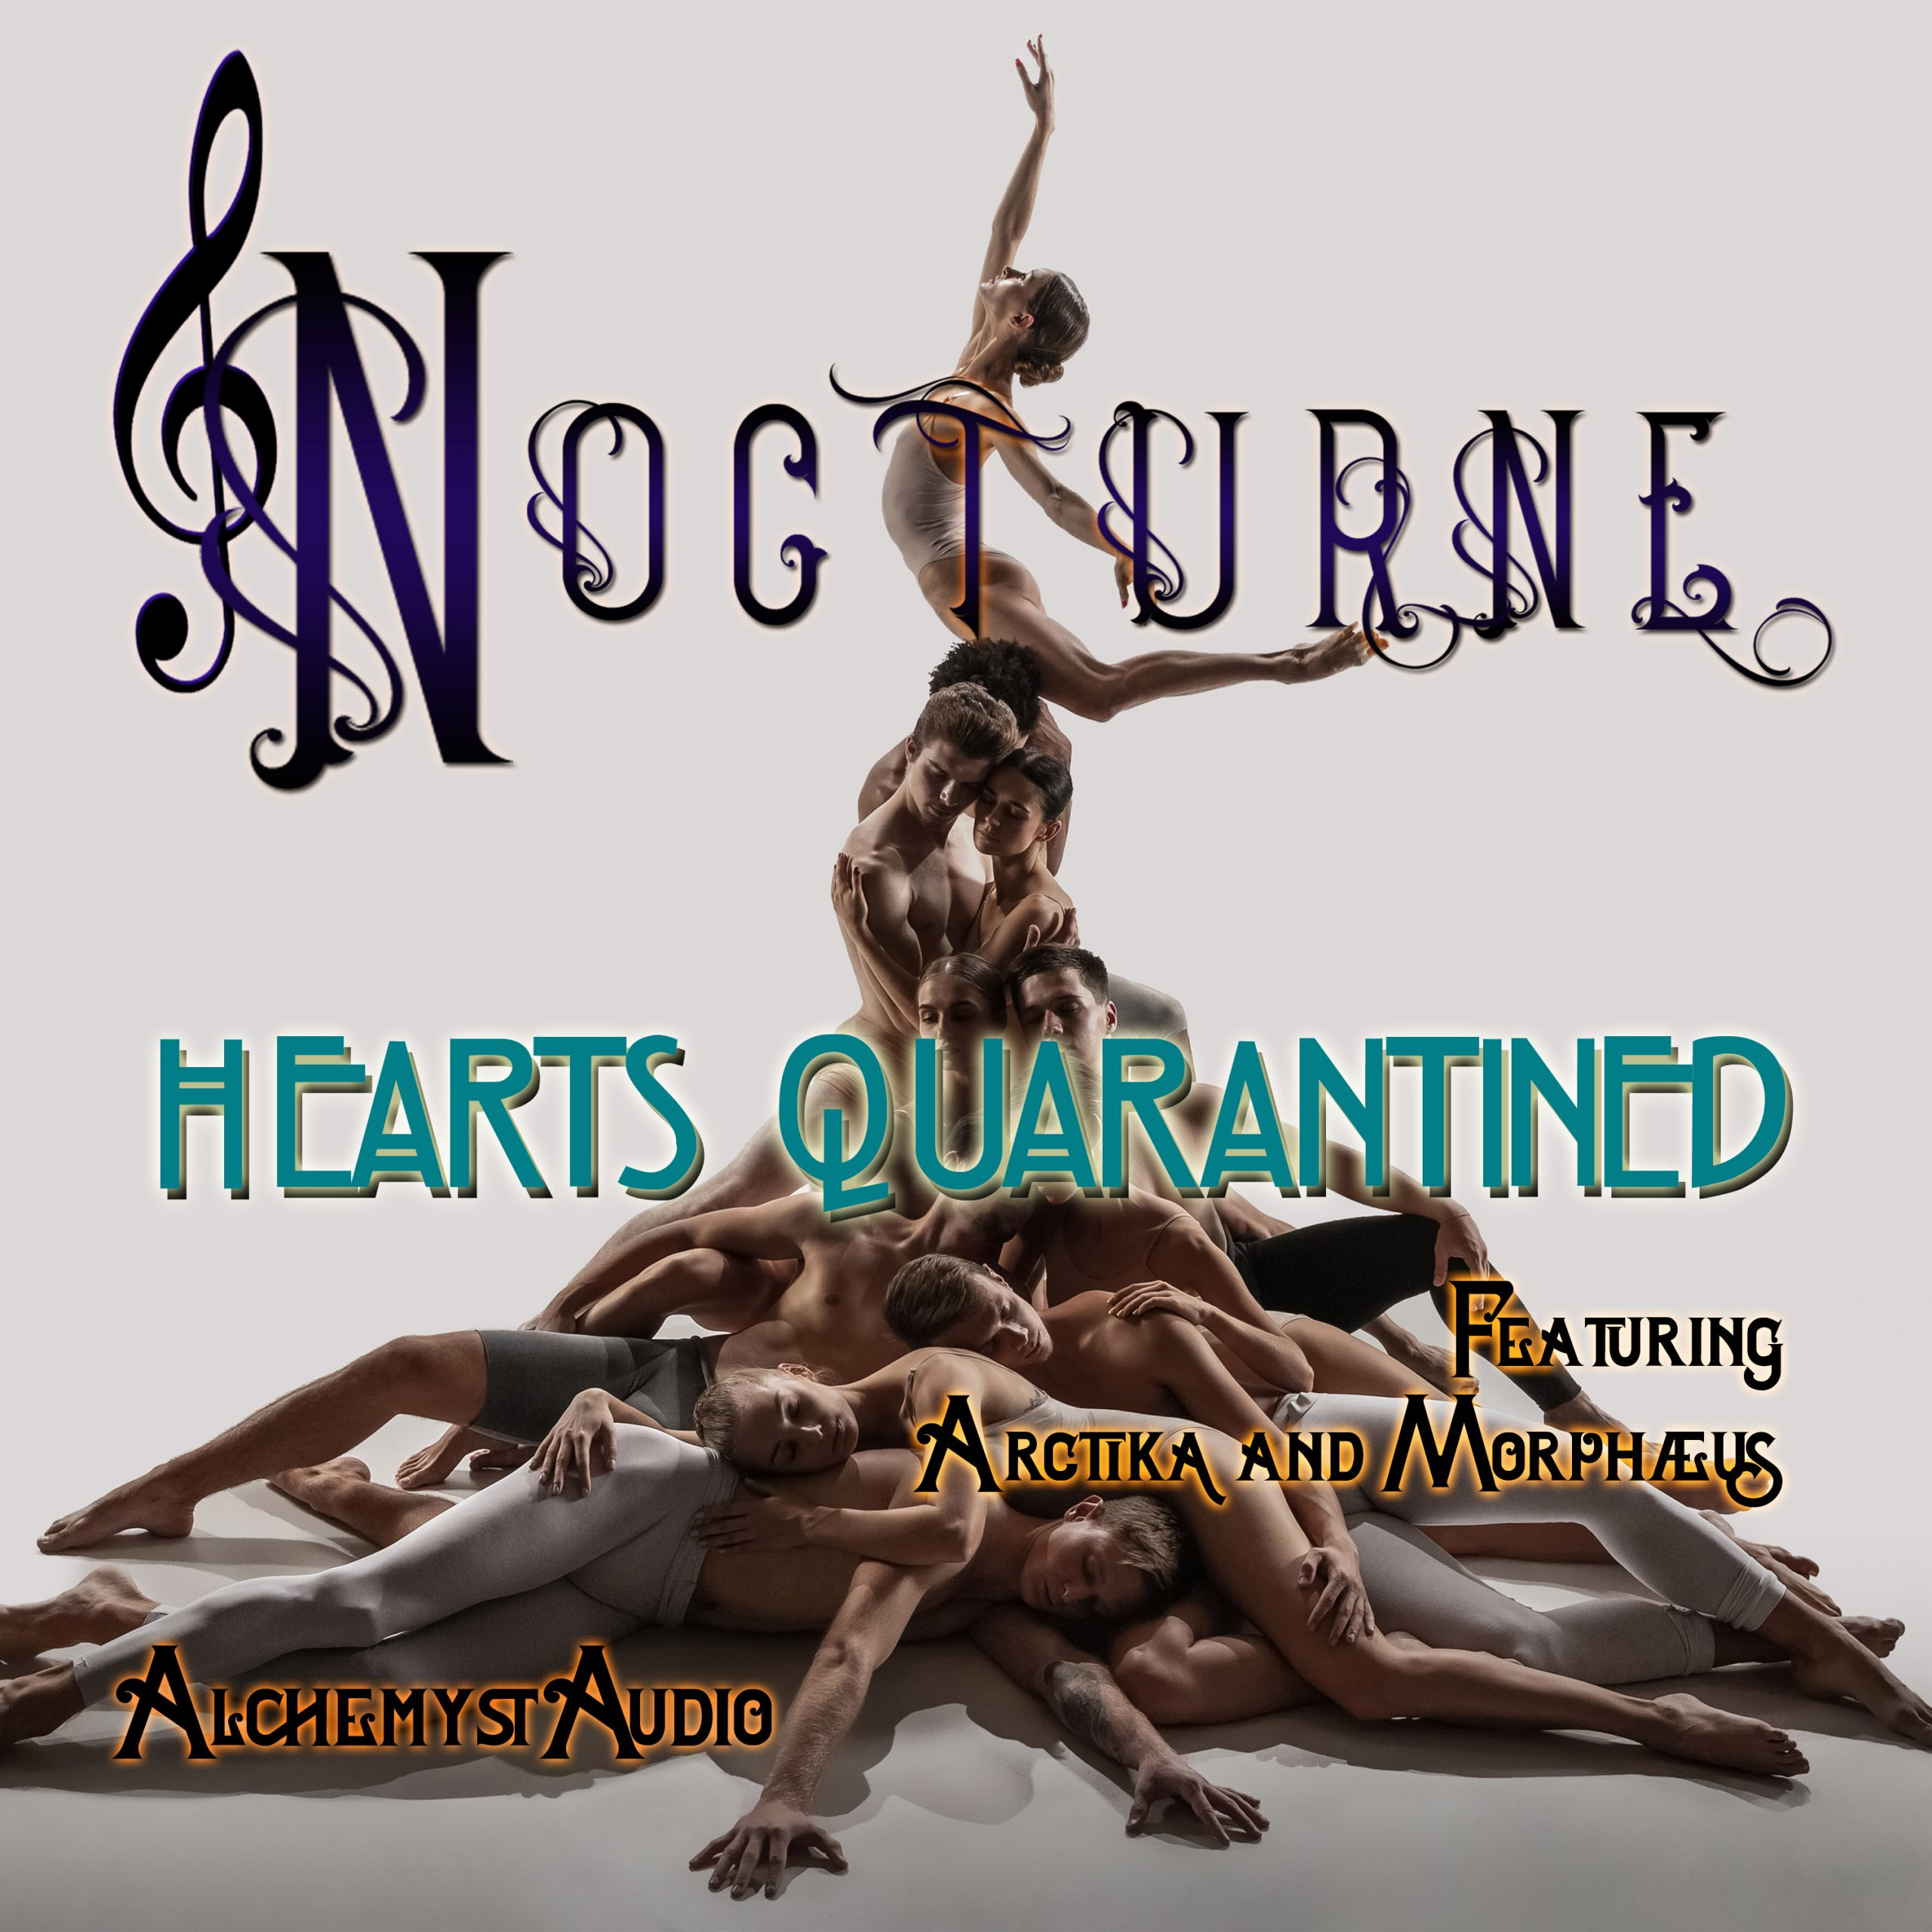 Beautiful Music Created In Global Pandemic by the Artist Nocturne